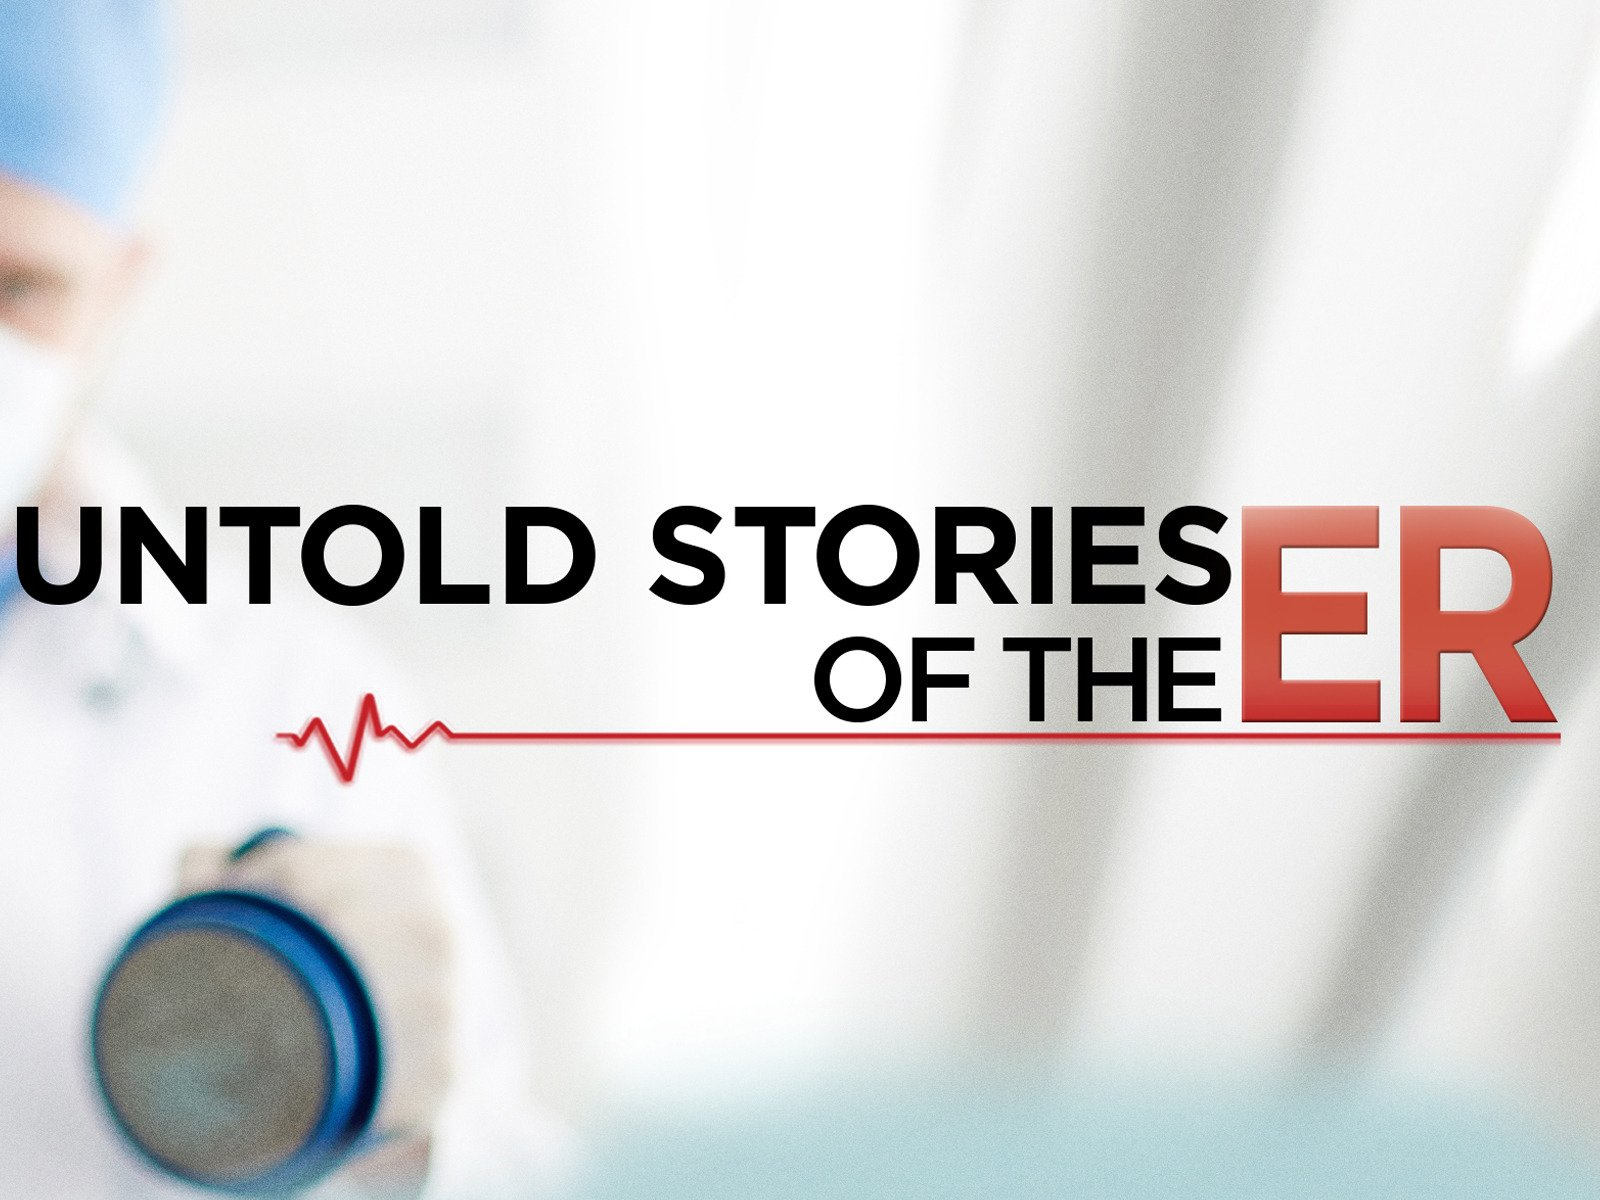 Untold Stories of the ER - Season 5